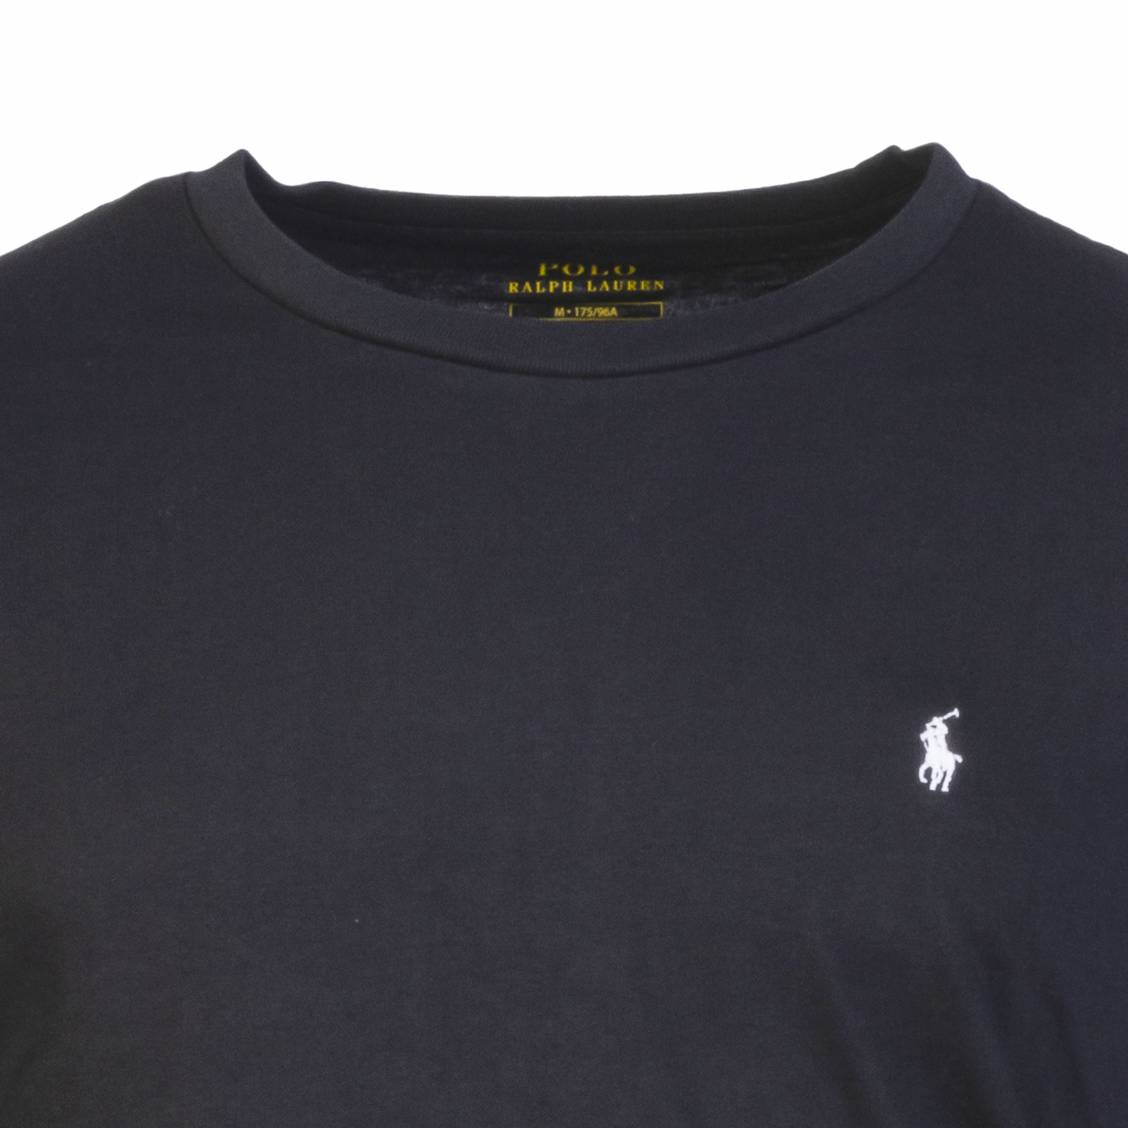 Tee-shirt manches longues col rond Polo Ralph